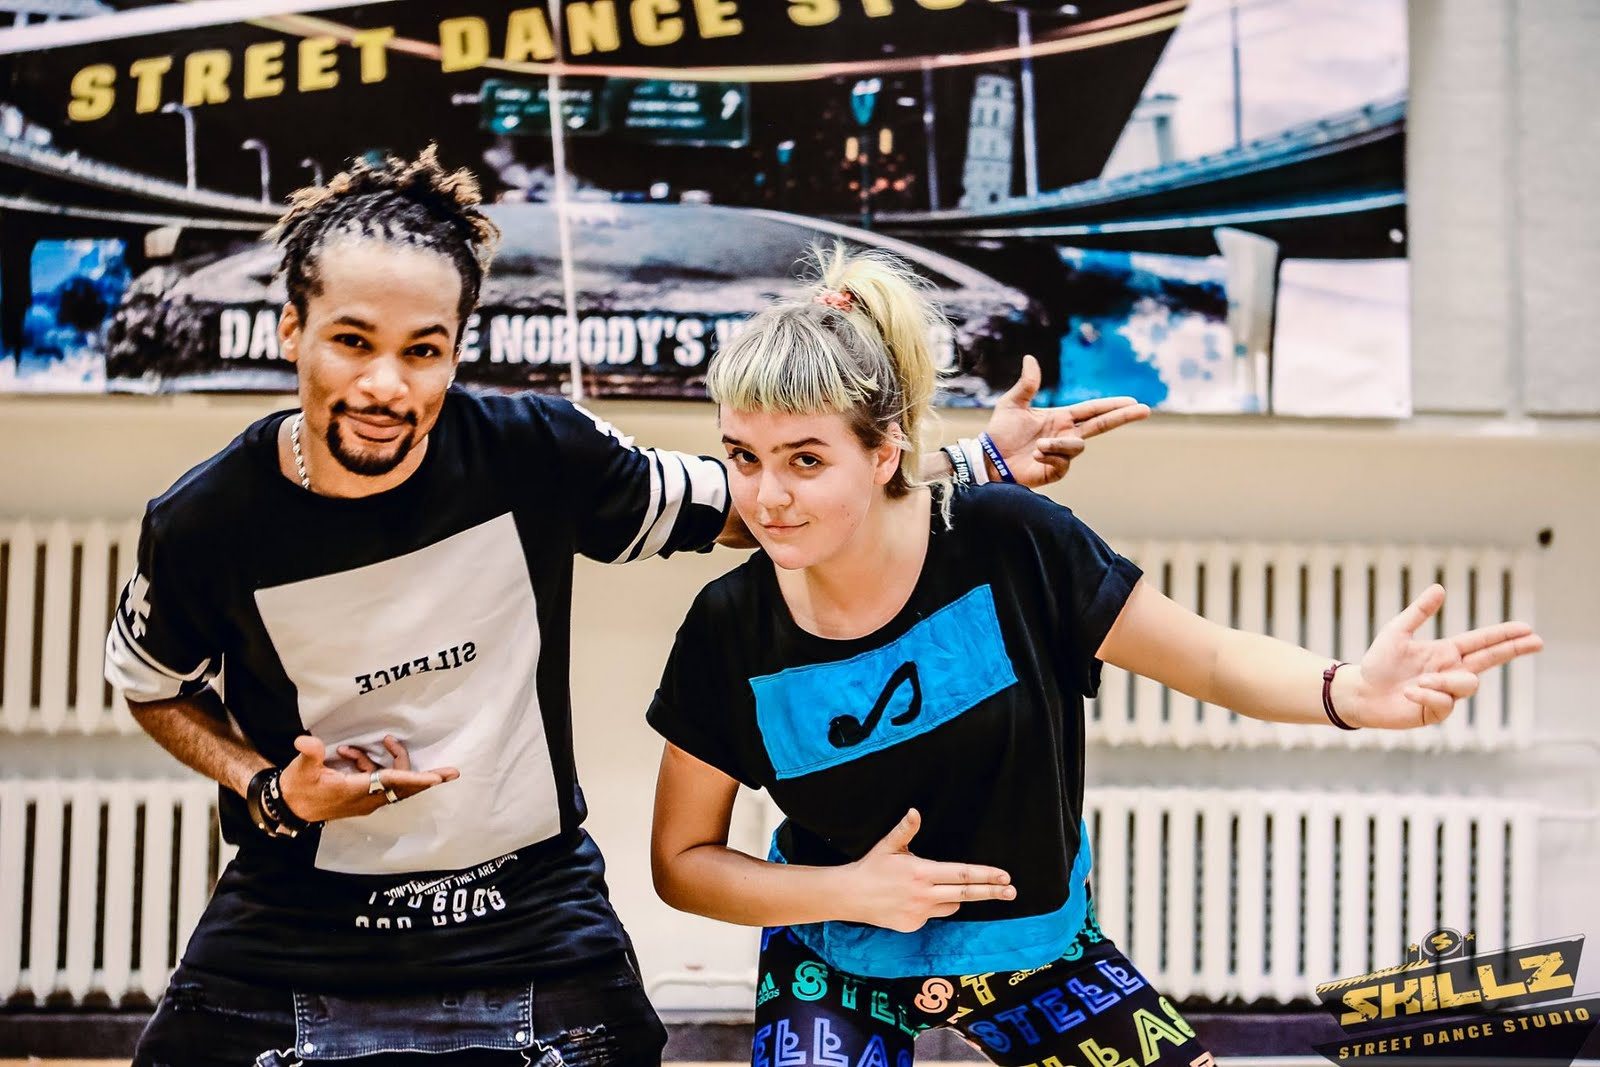 Dancehall workshop with Jiggy (France) - 75.jpg